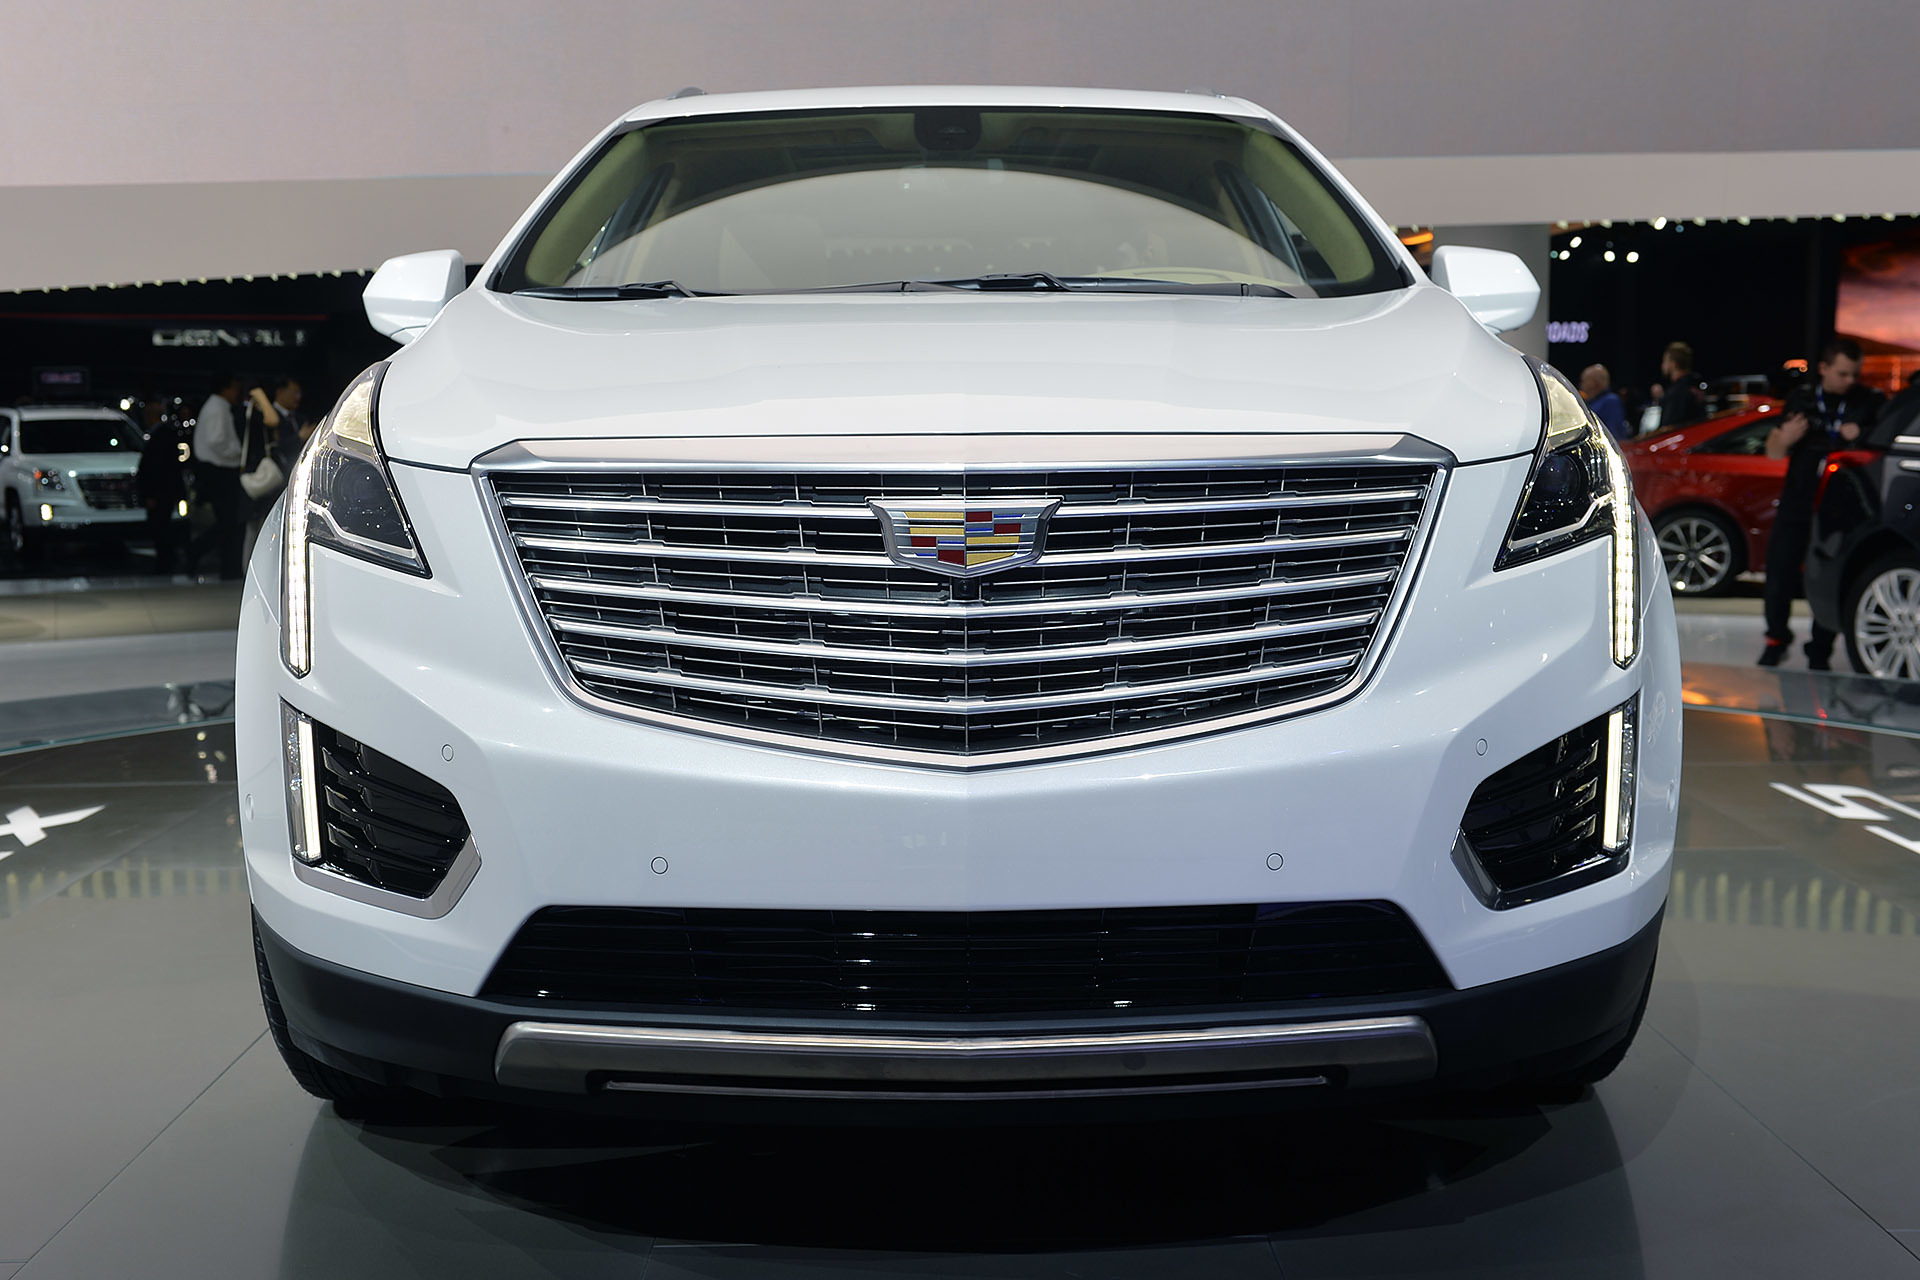 2017 cadillac xt5 crossover at los angeles auto show 2015. Black Bedroom Furniture Sets. Home Design Ideas